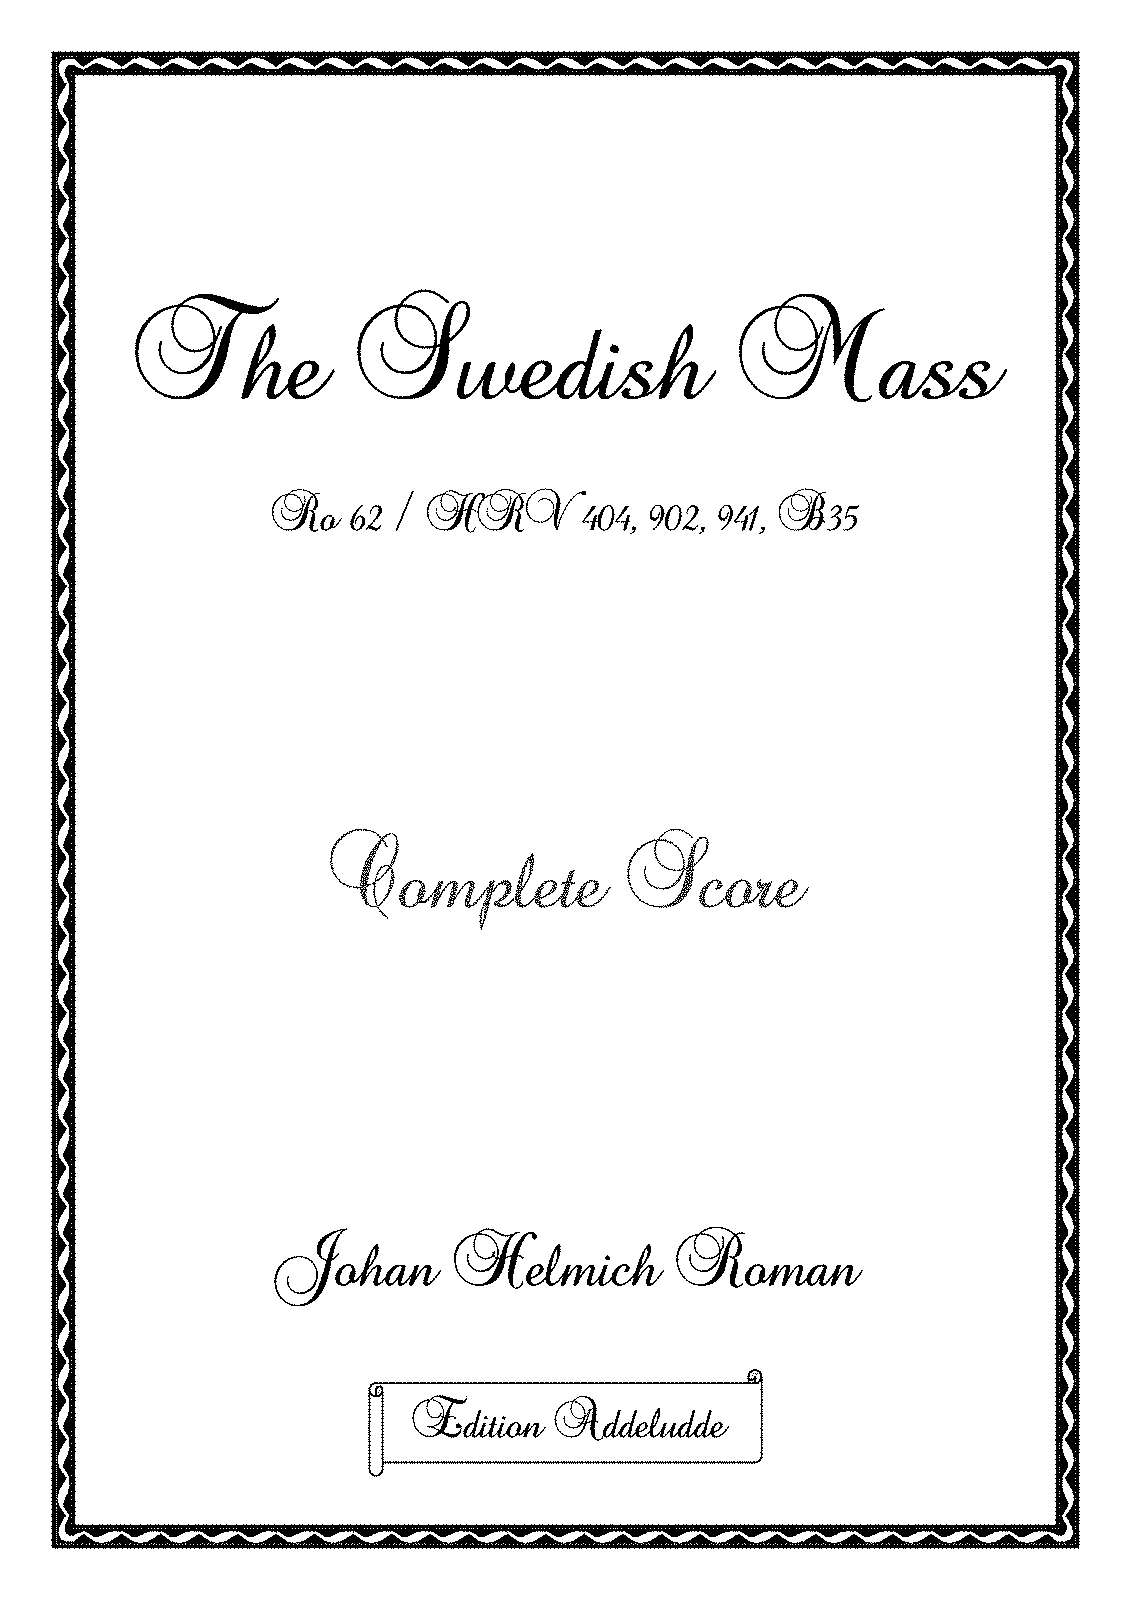 PMLP436890-The Swedish Mass CS.pdf